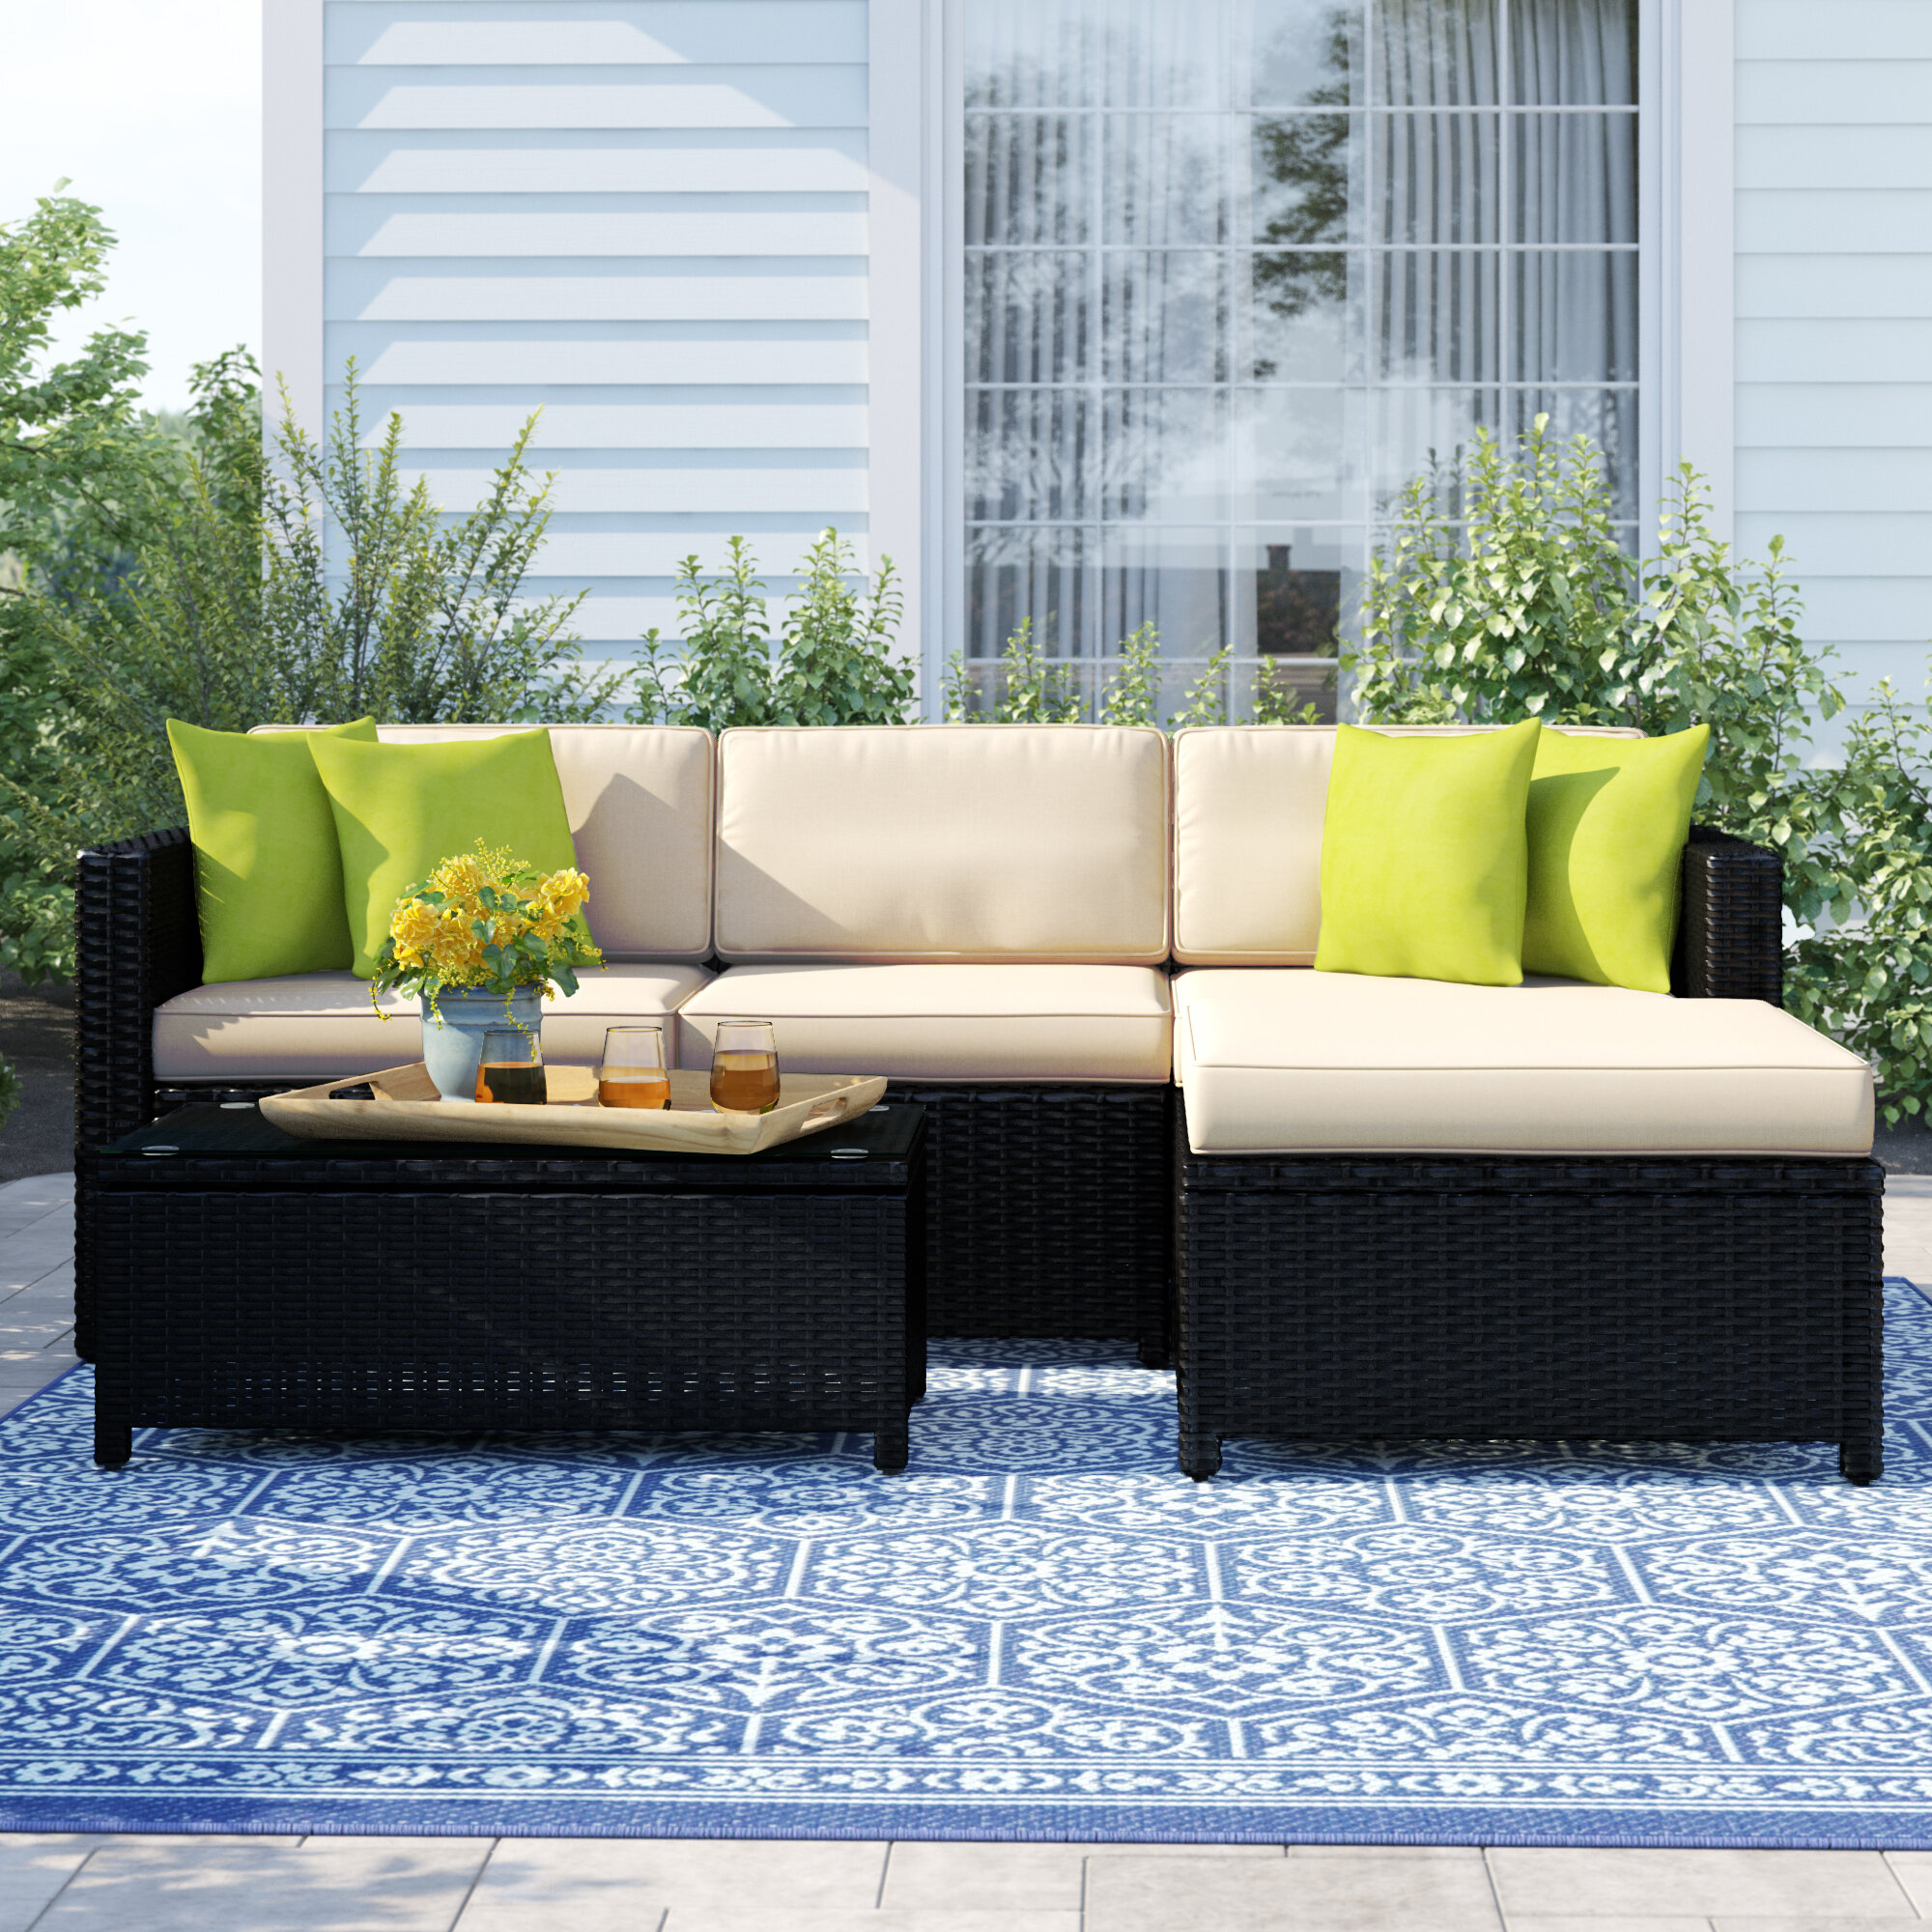 Carmelo 5 piece rattan sectional seating group with cushions reviews birch lane